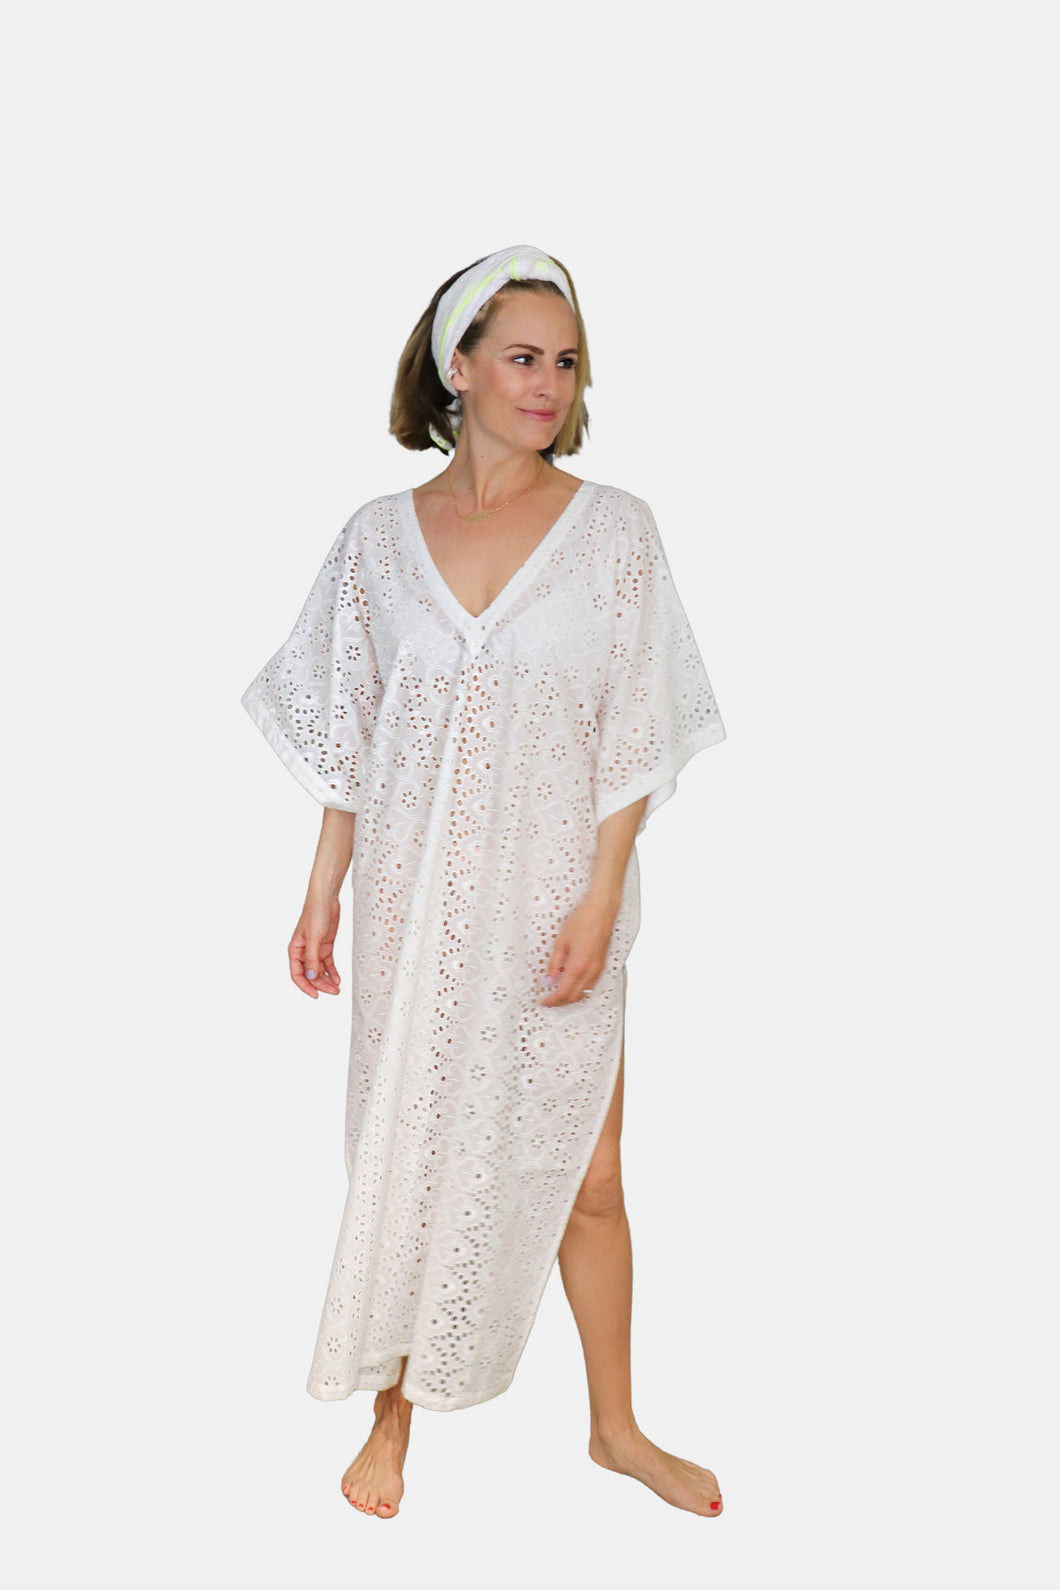 The Airy Kaftan